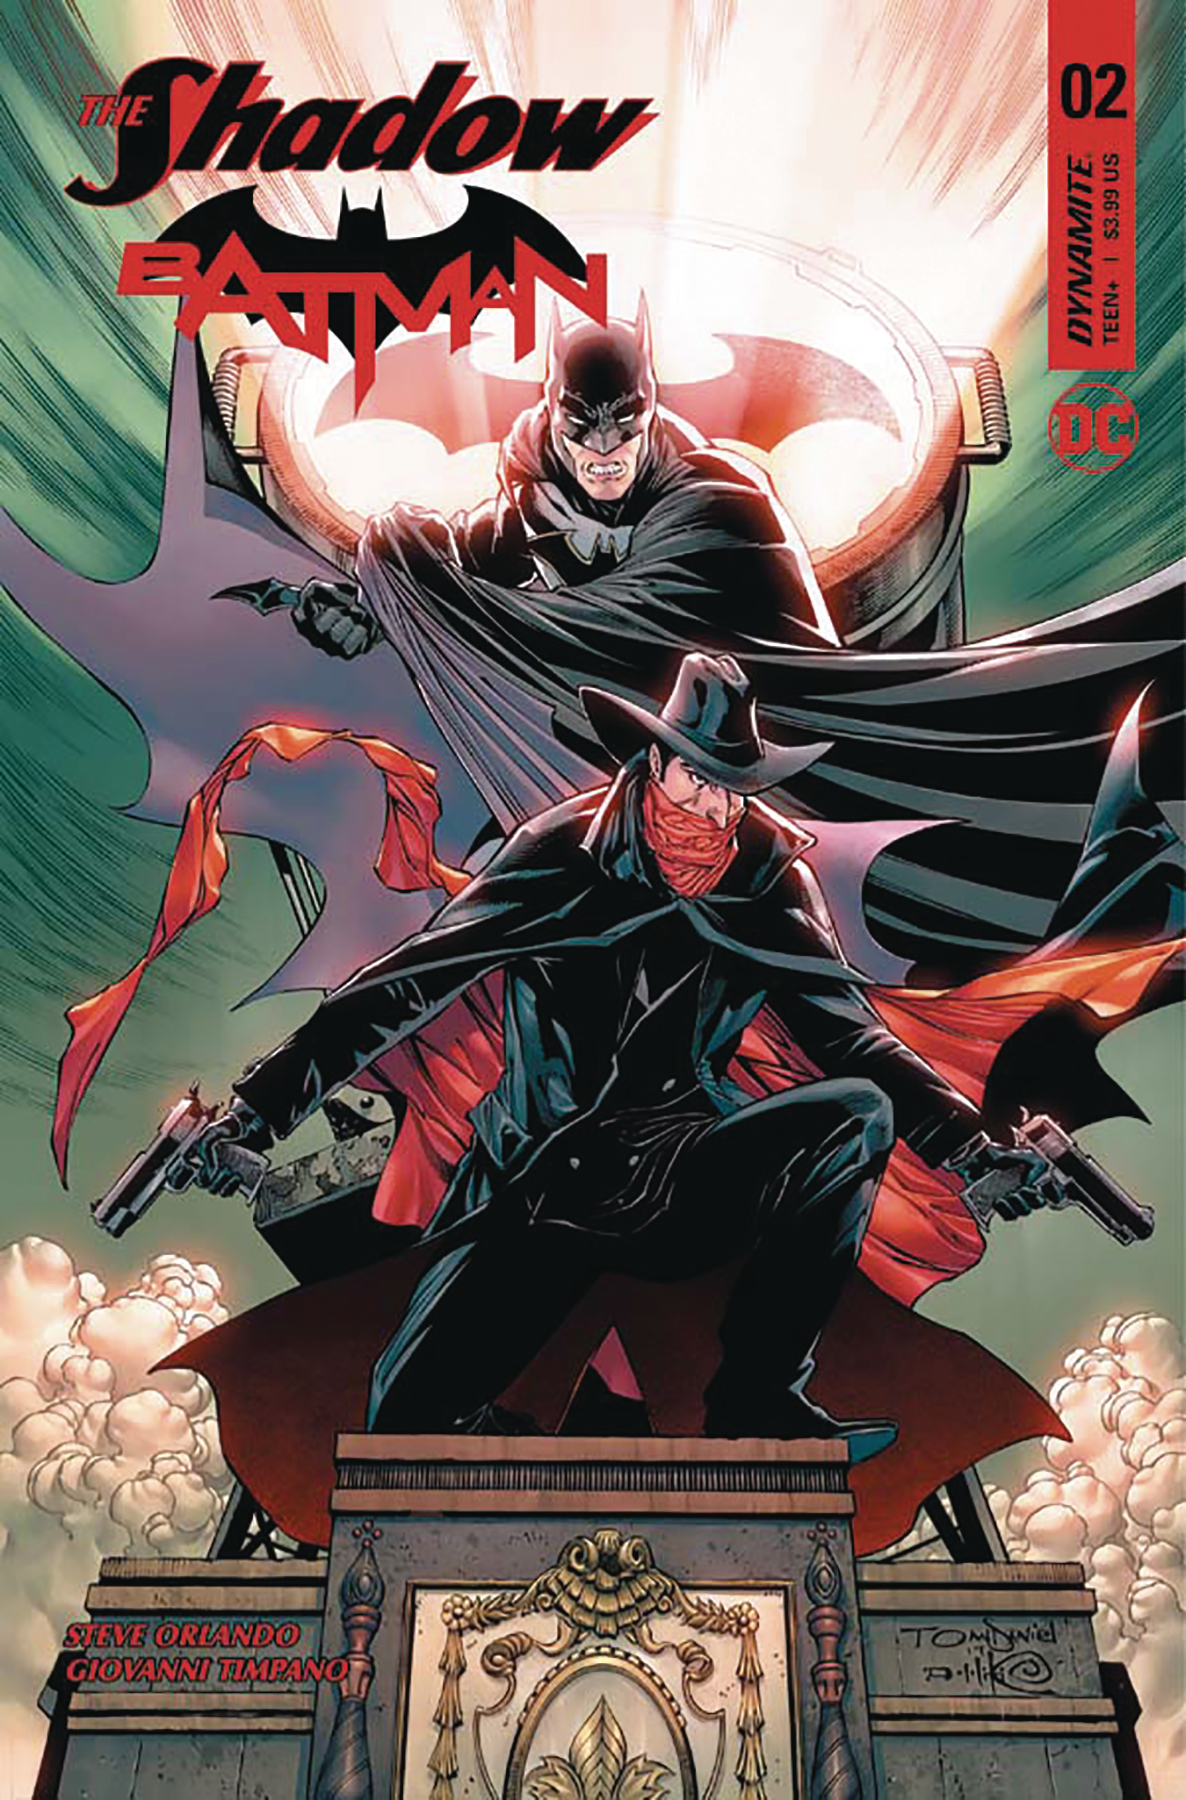 SHADOW BATMAN #2